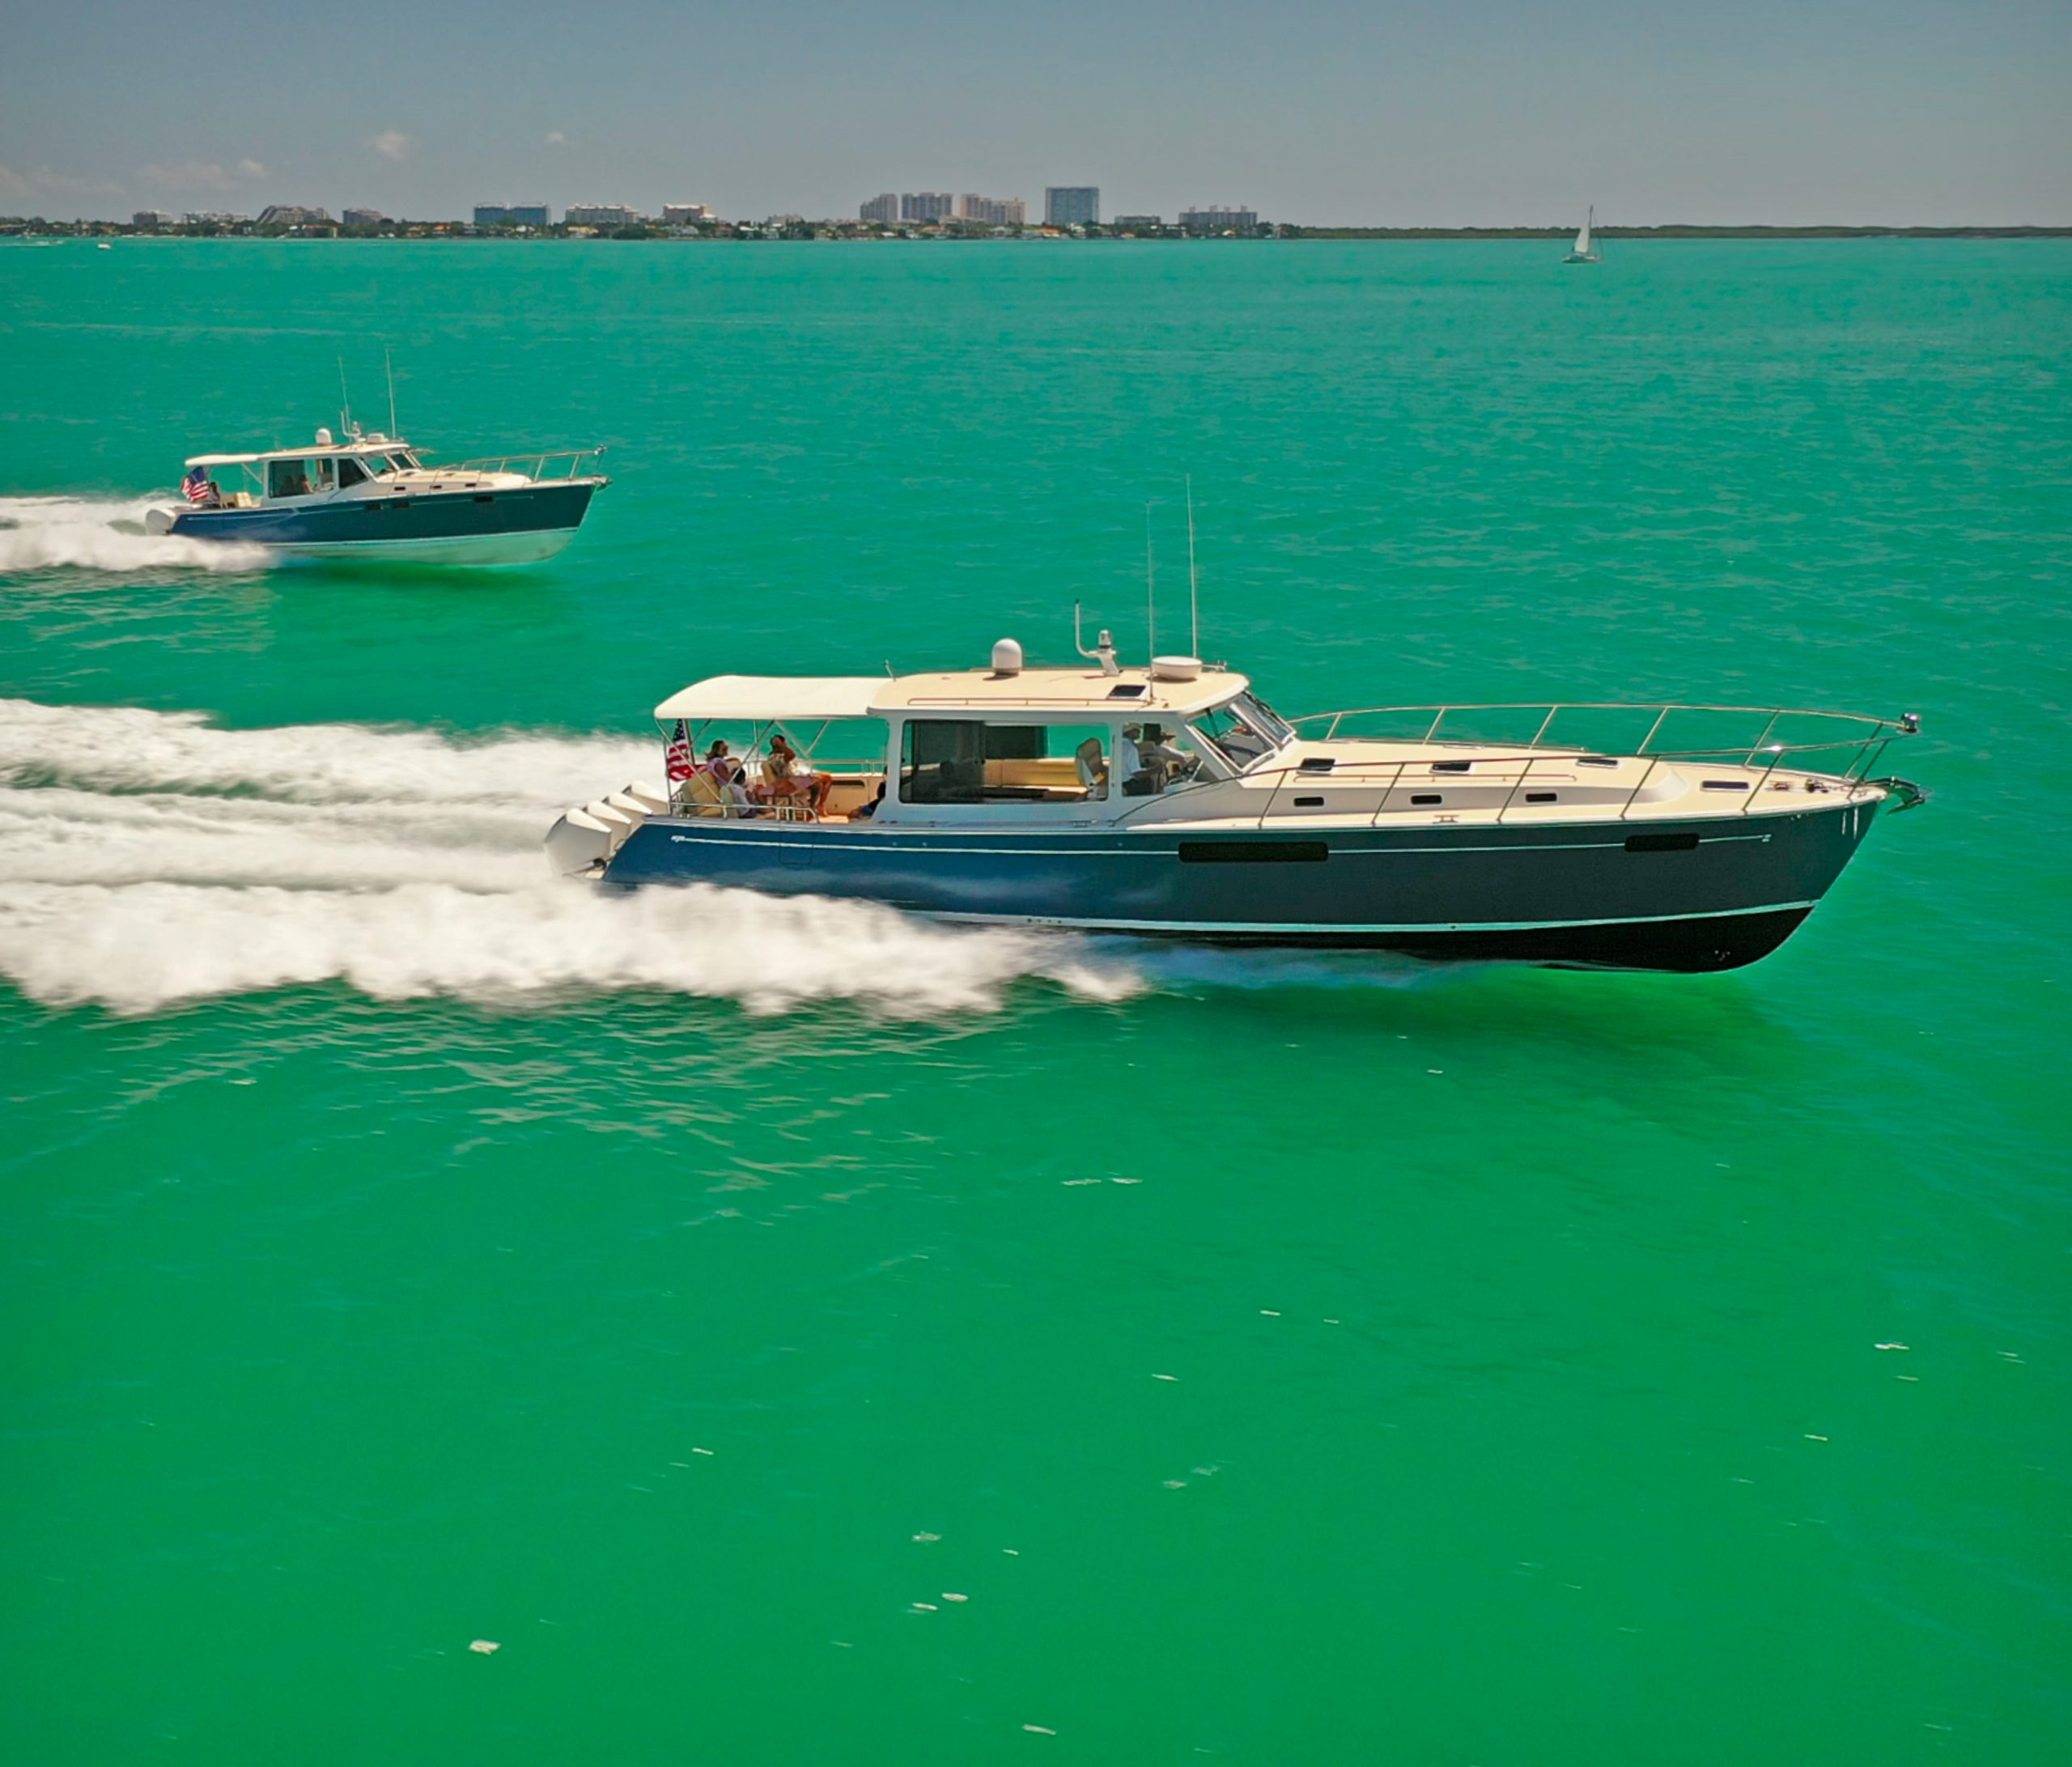 Outboard Powered Express Cruisers From MJM Yachts